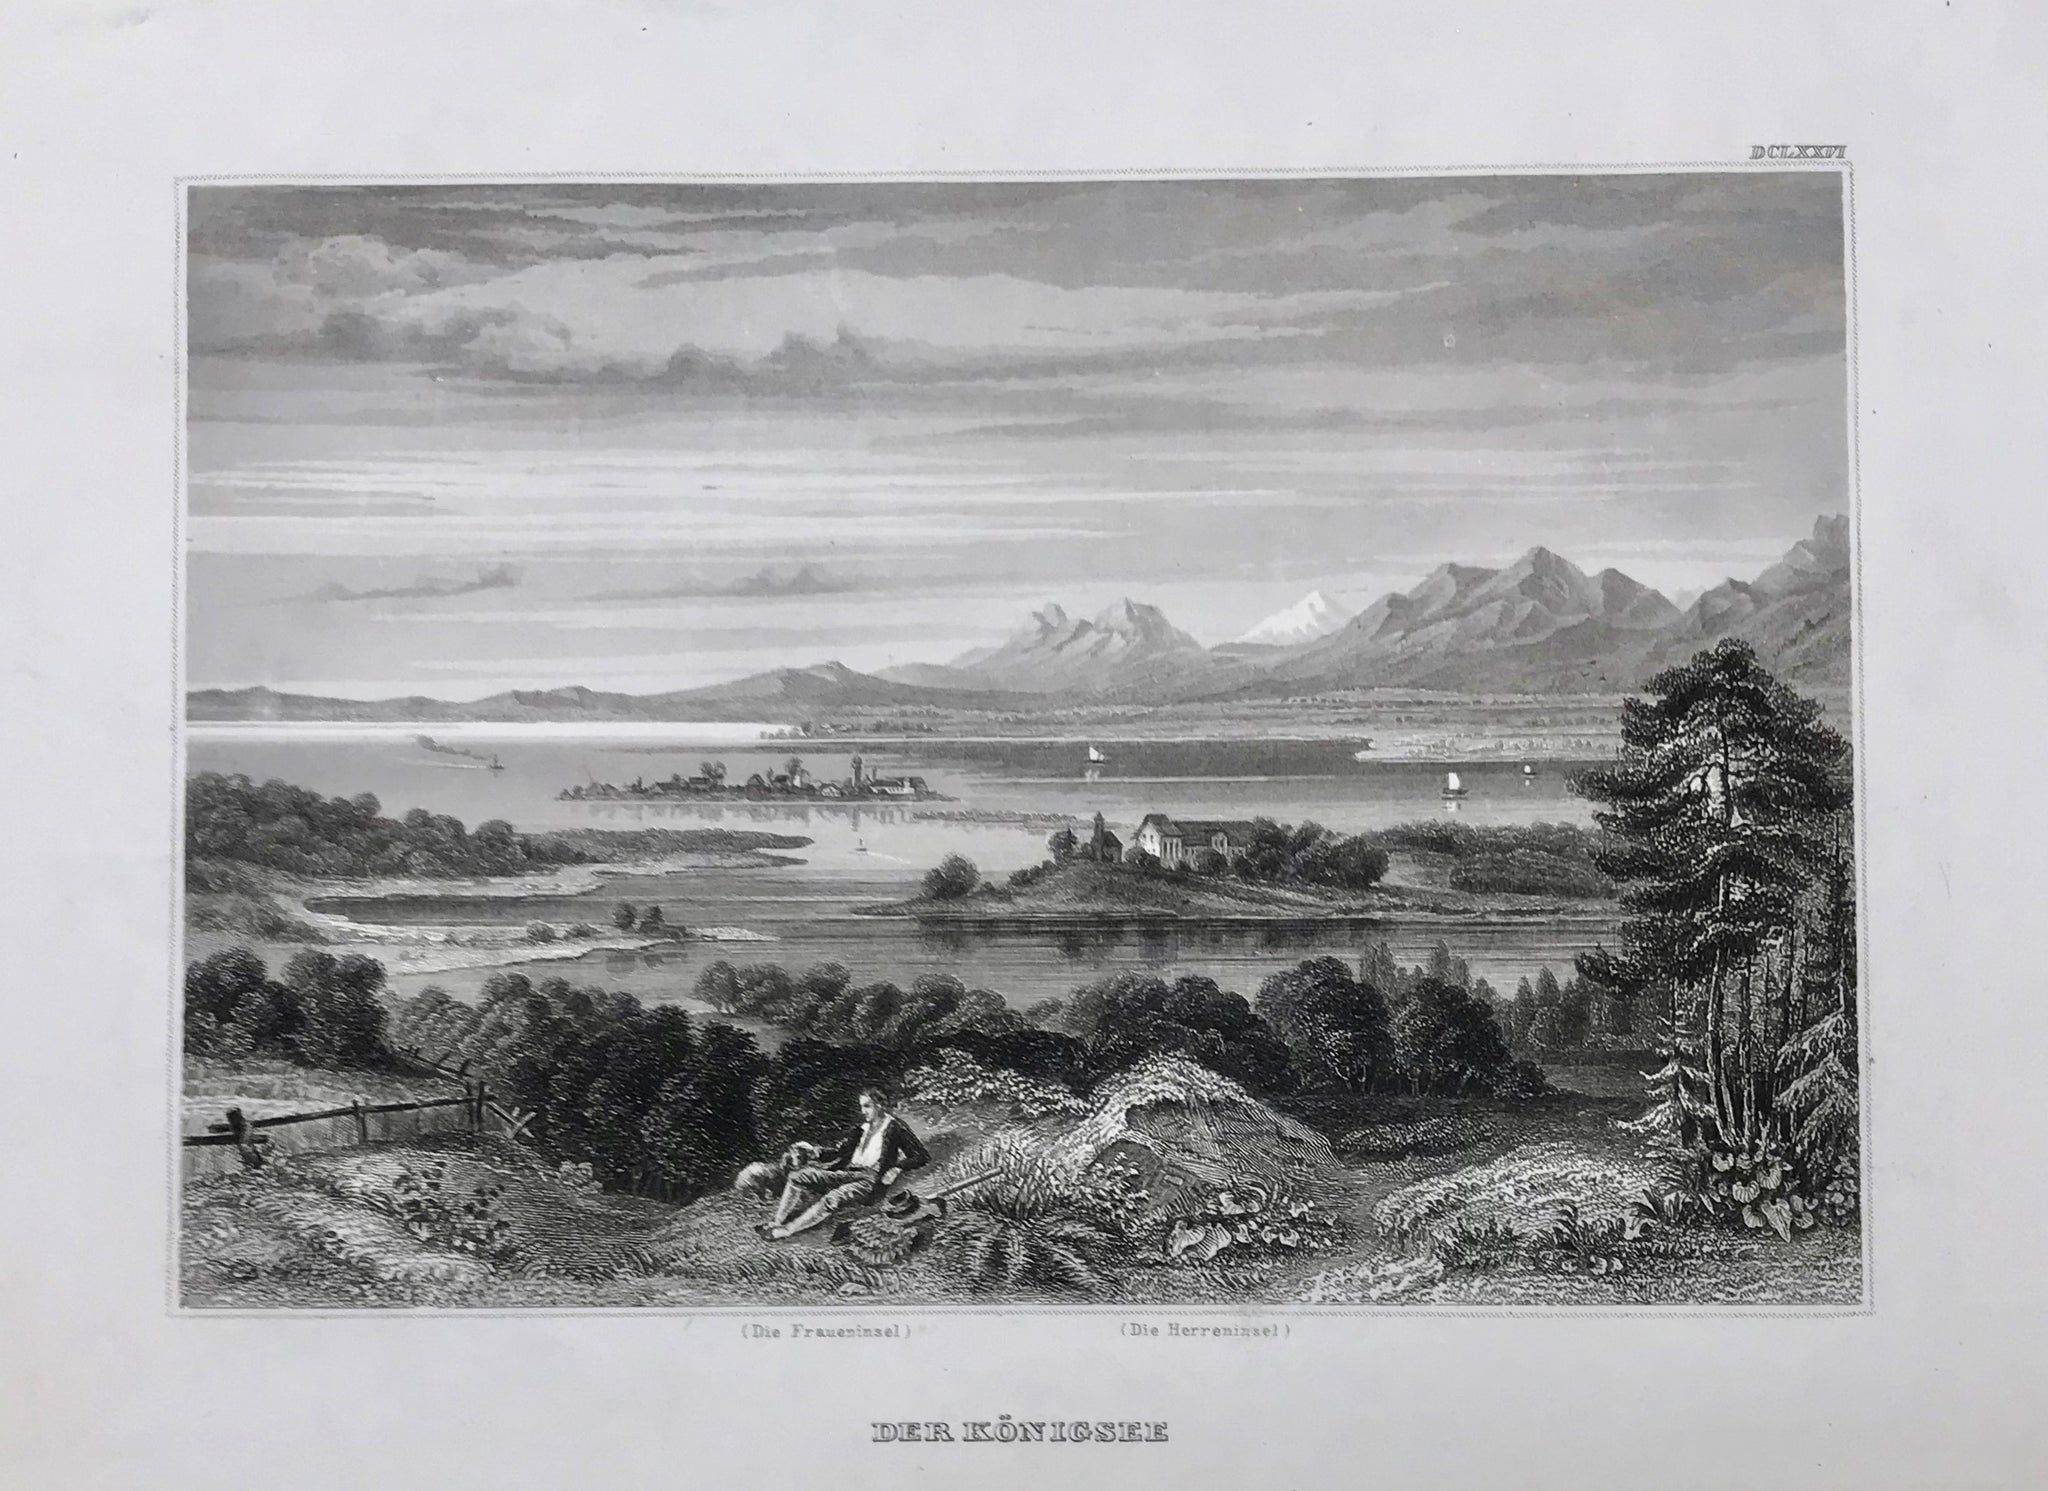 """Der Koenigsee""  Steel engraving ca 1850. The Chiemsee was also named Koenigsee (the king's lake) because the island of Herrenchiemsee was the Residence of King Ludwig II. Written below the image in very small print is "" (Die Fraueninsel) (Der Herreninsel)""."